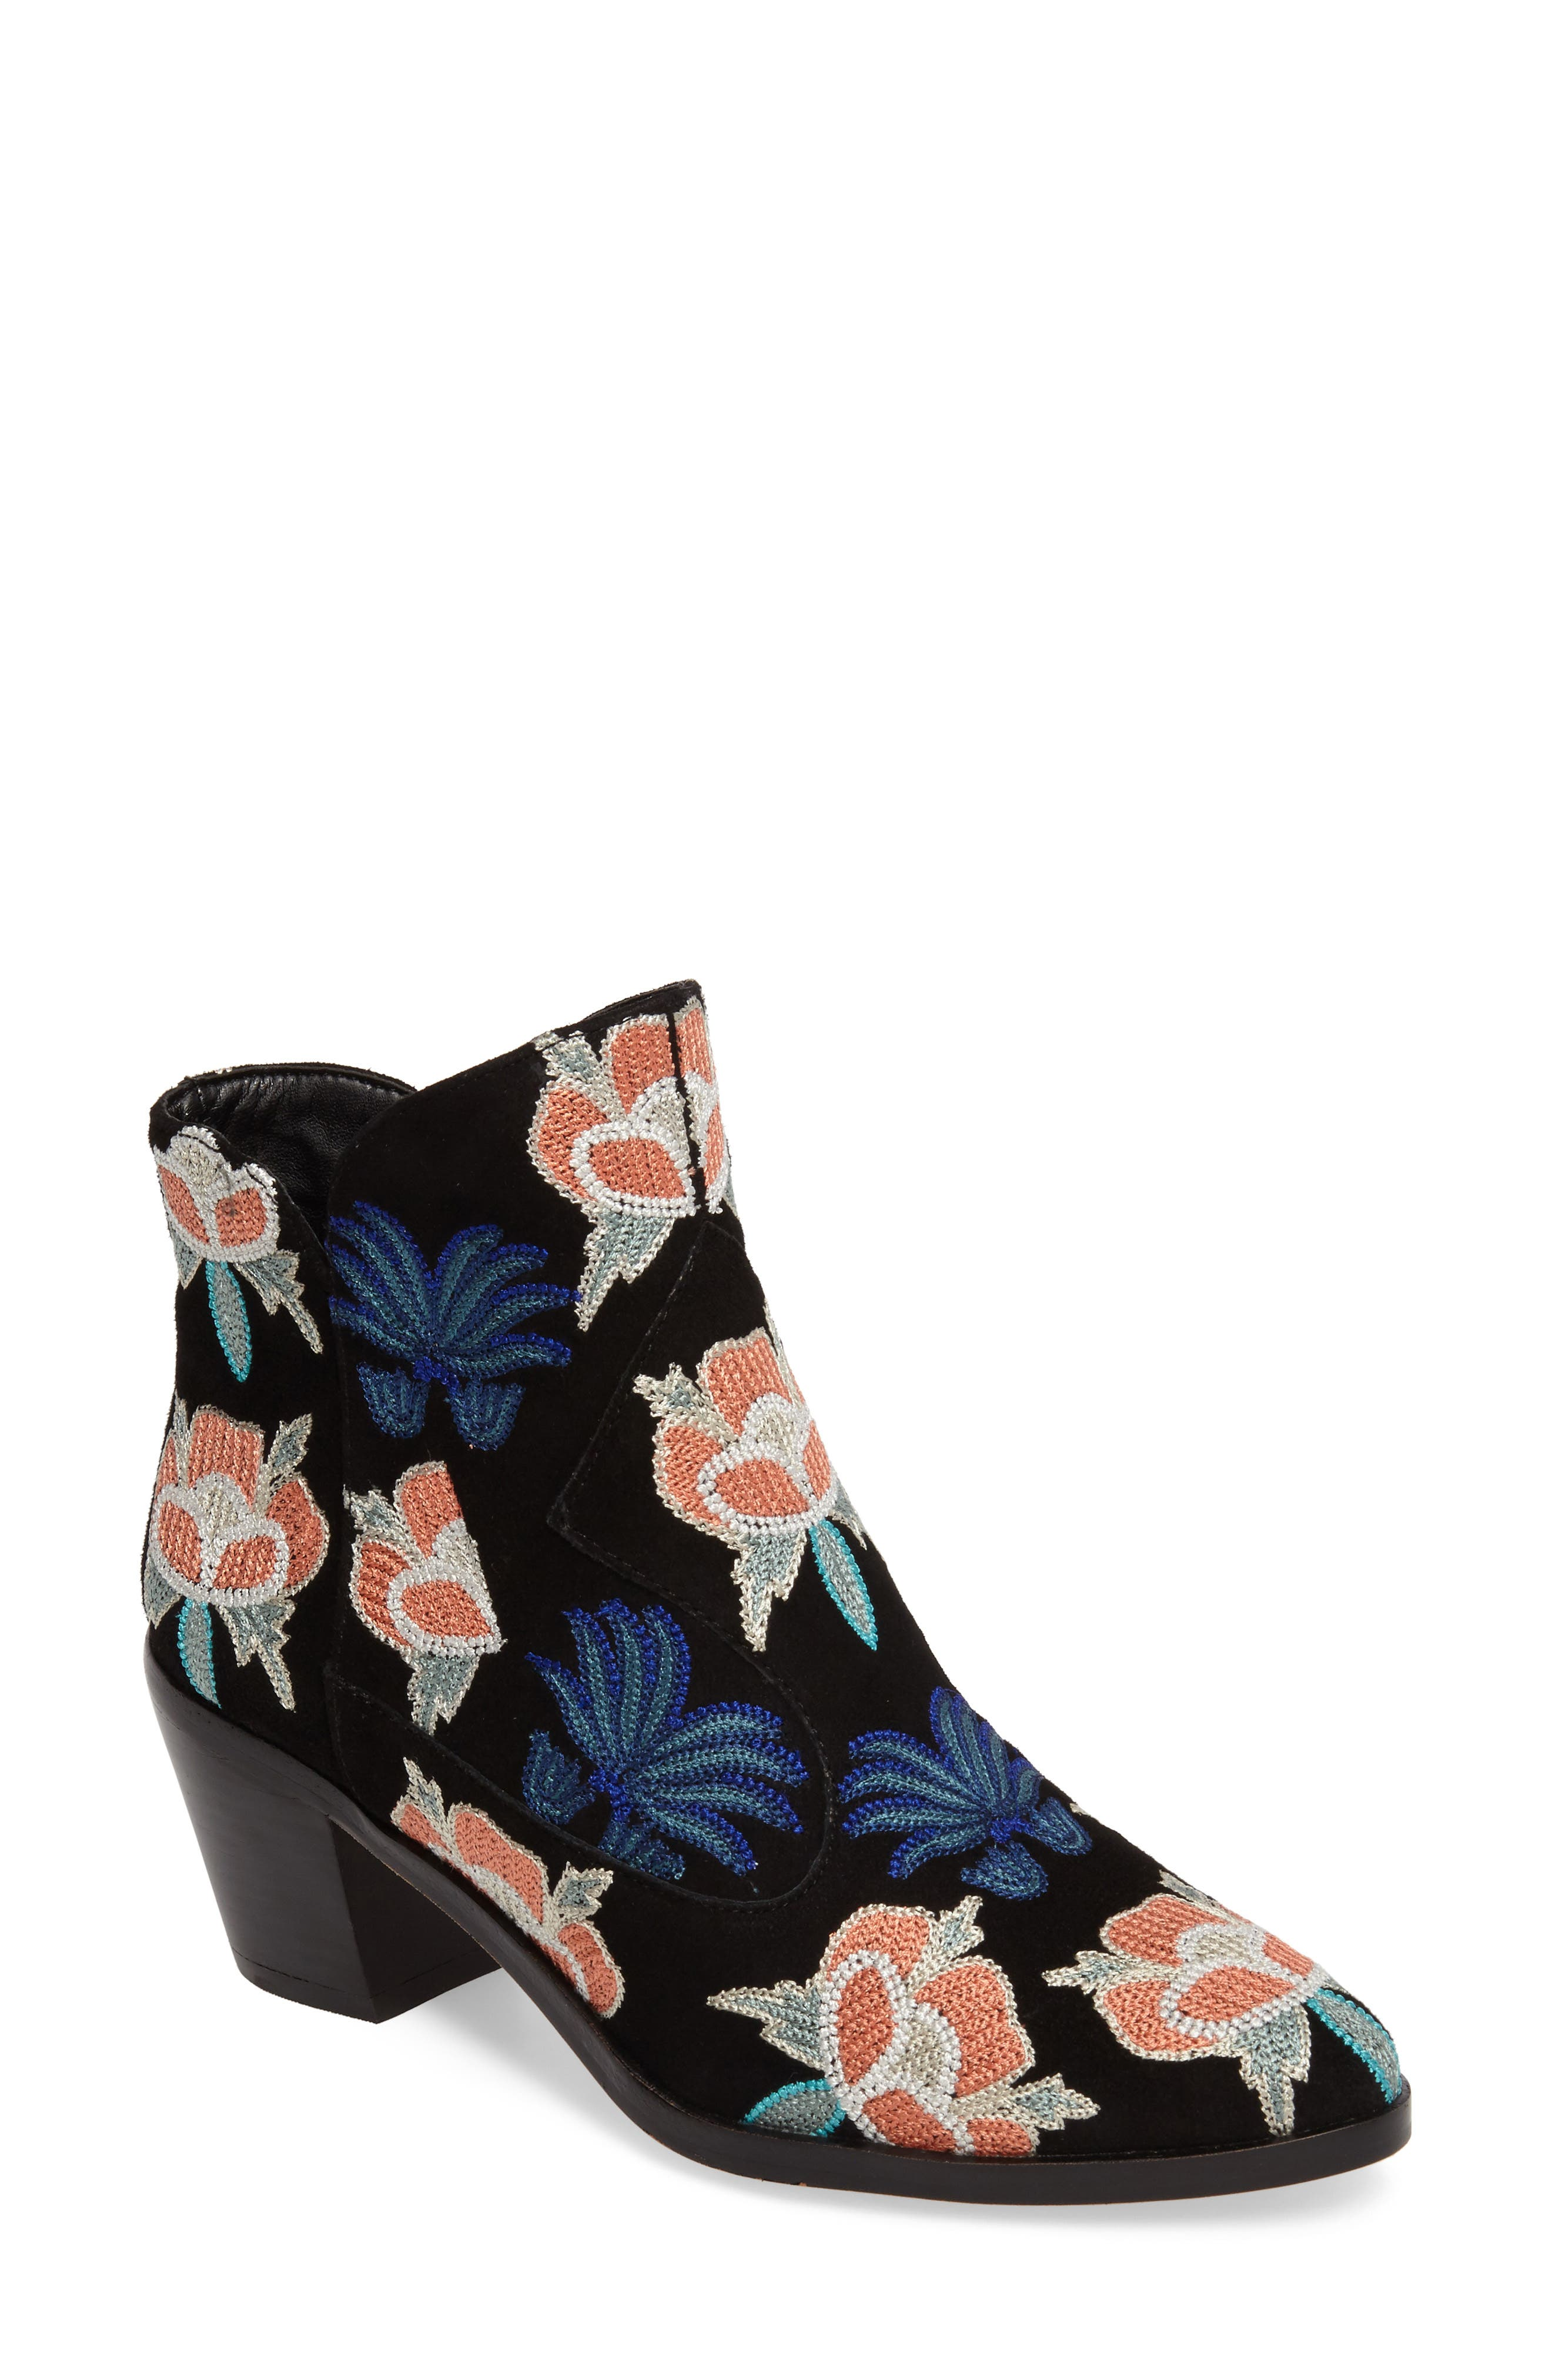 Alternate Image 1 Selected - Rebecca Minkoff Lulu Too Flower Embroidered Bootie (Women)